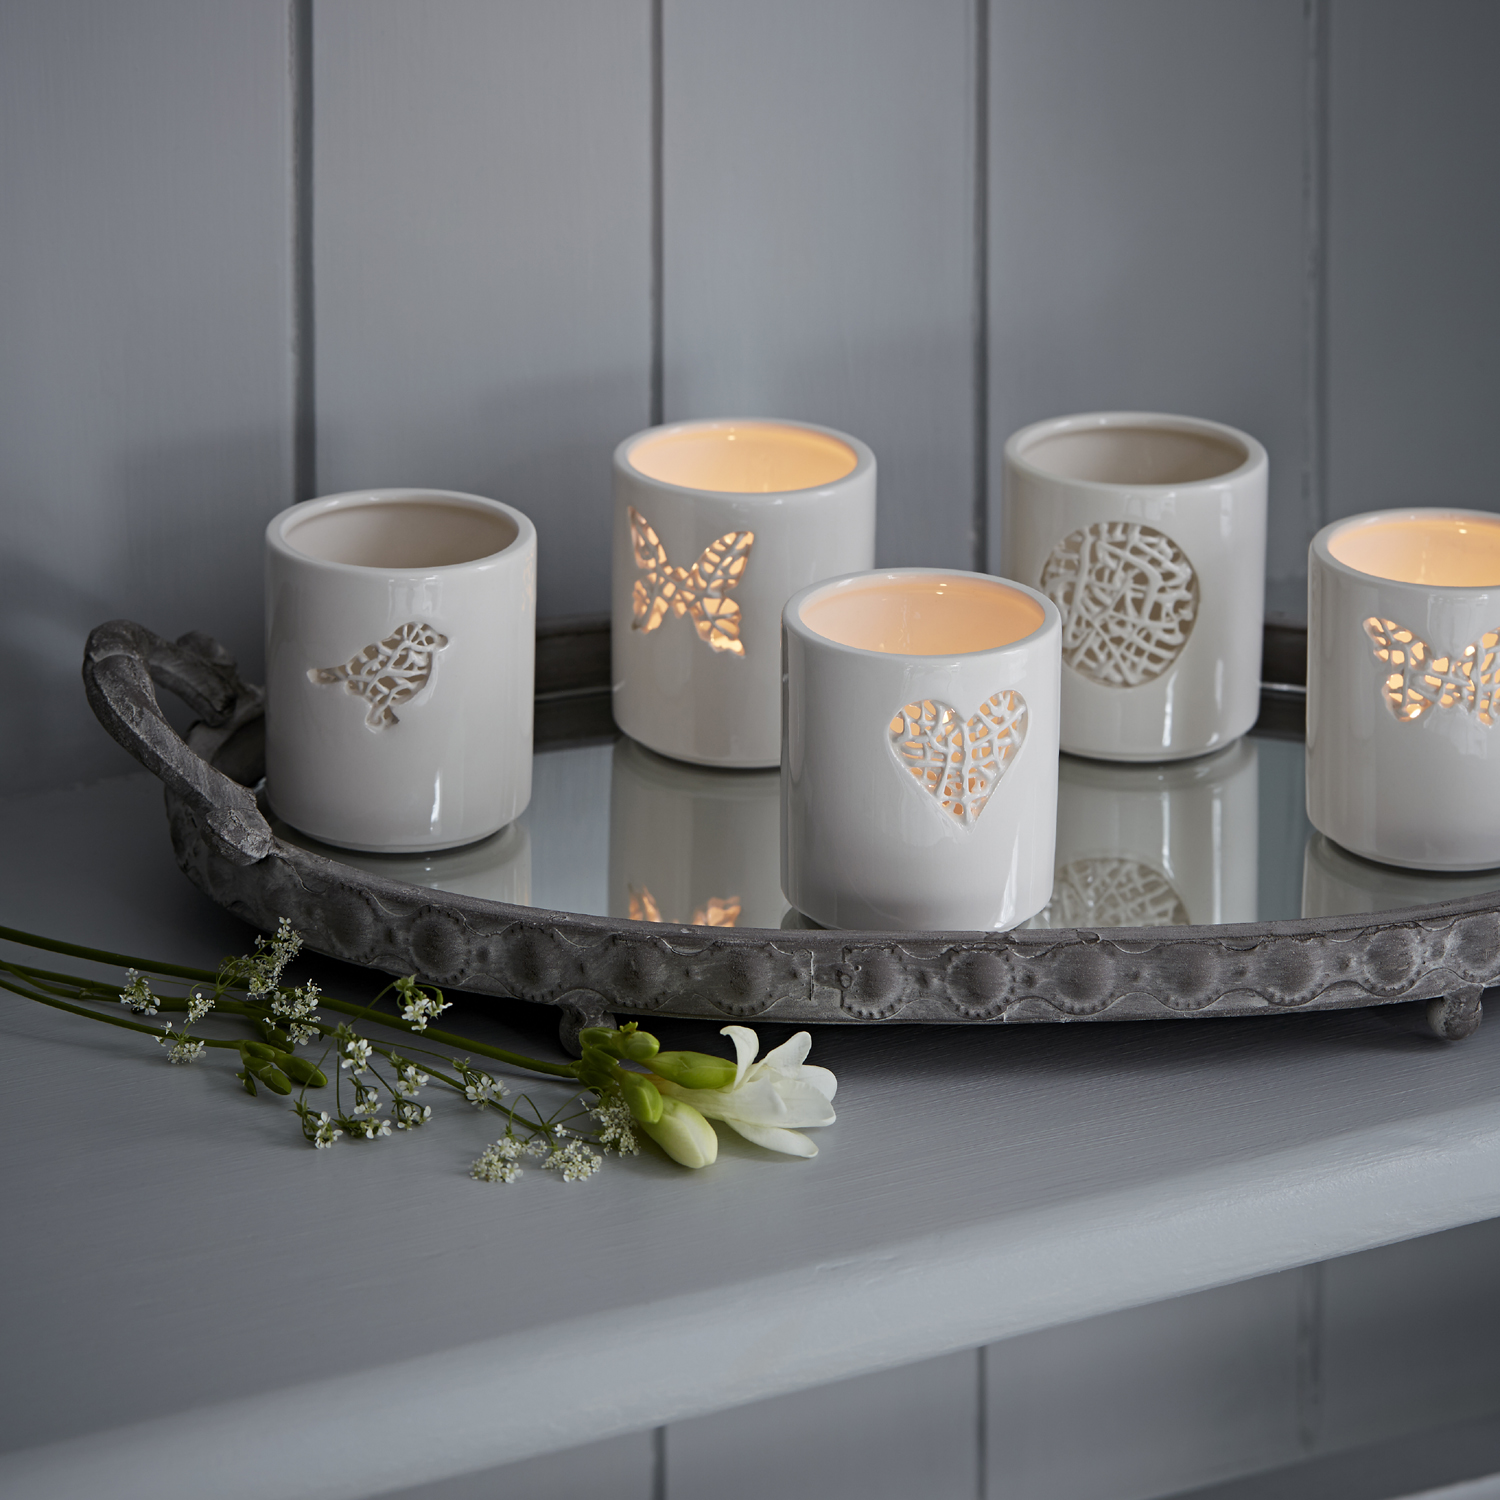 Tangled Tea Light Holders   ceramic    £15 each